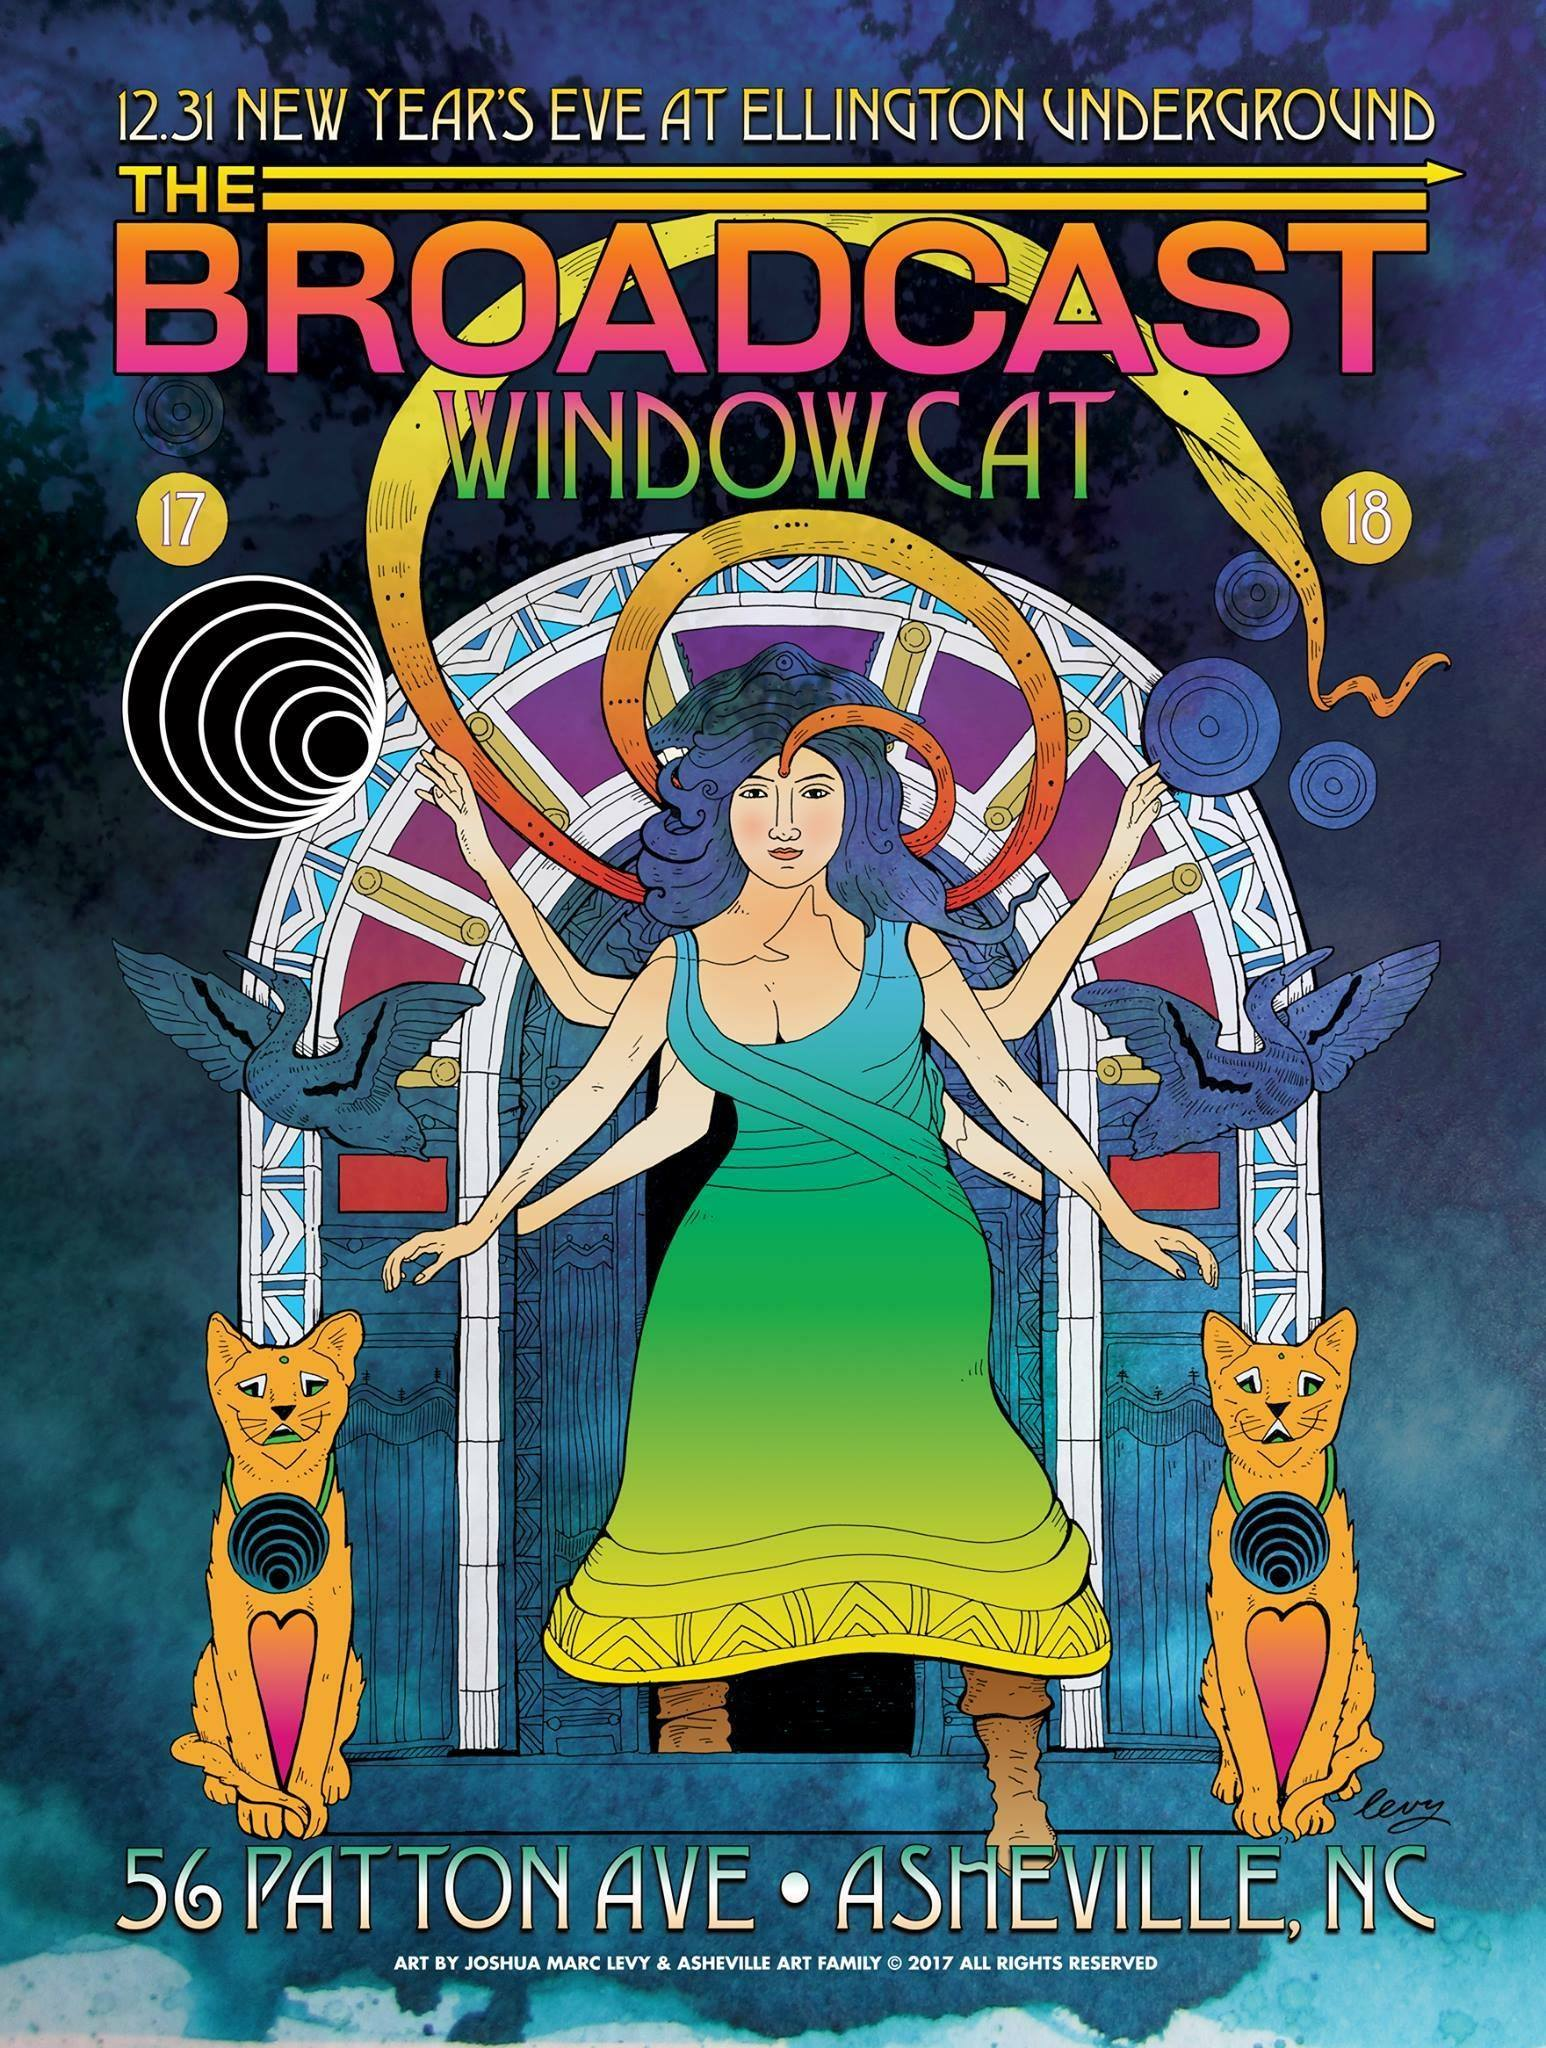 Broadcast and Window Cat on NYE. Image: Joshua Marc Levy